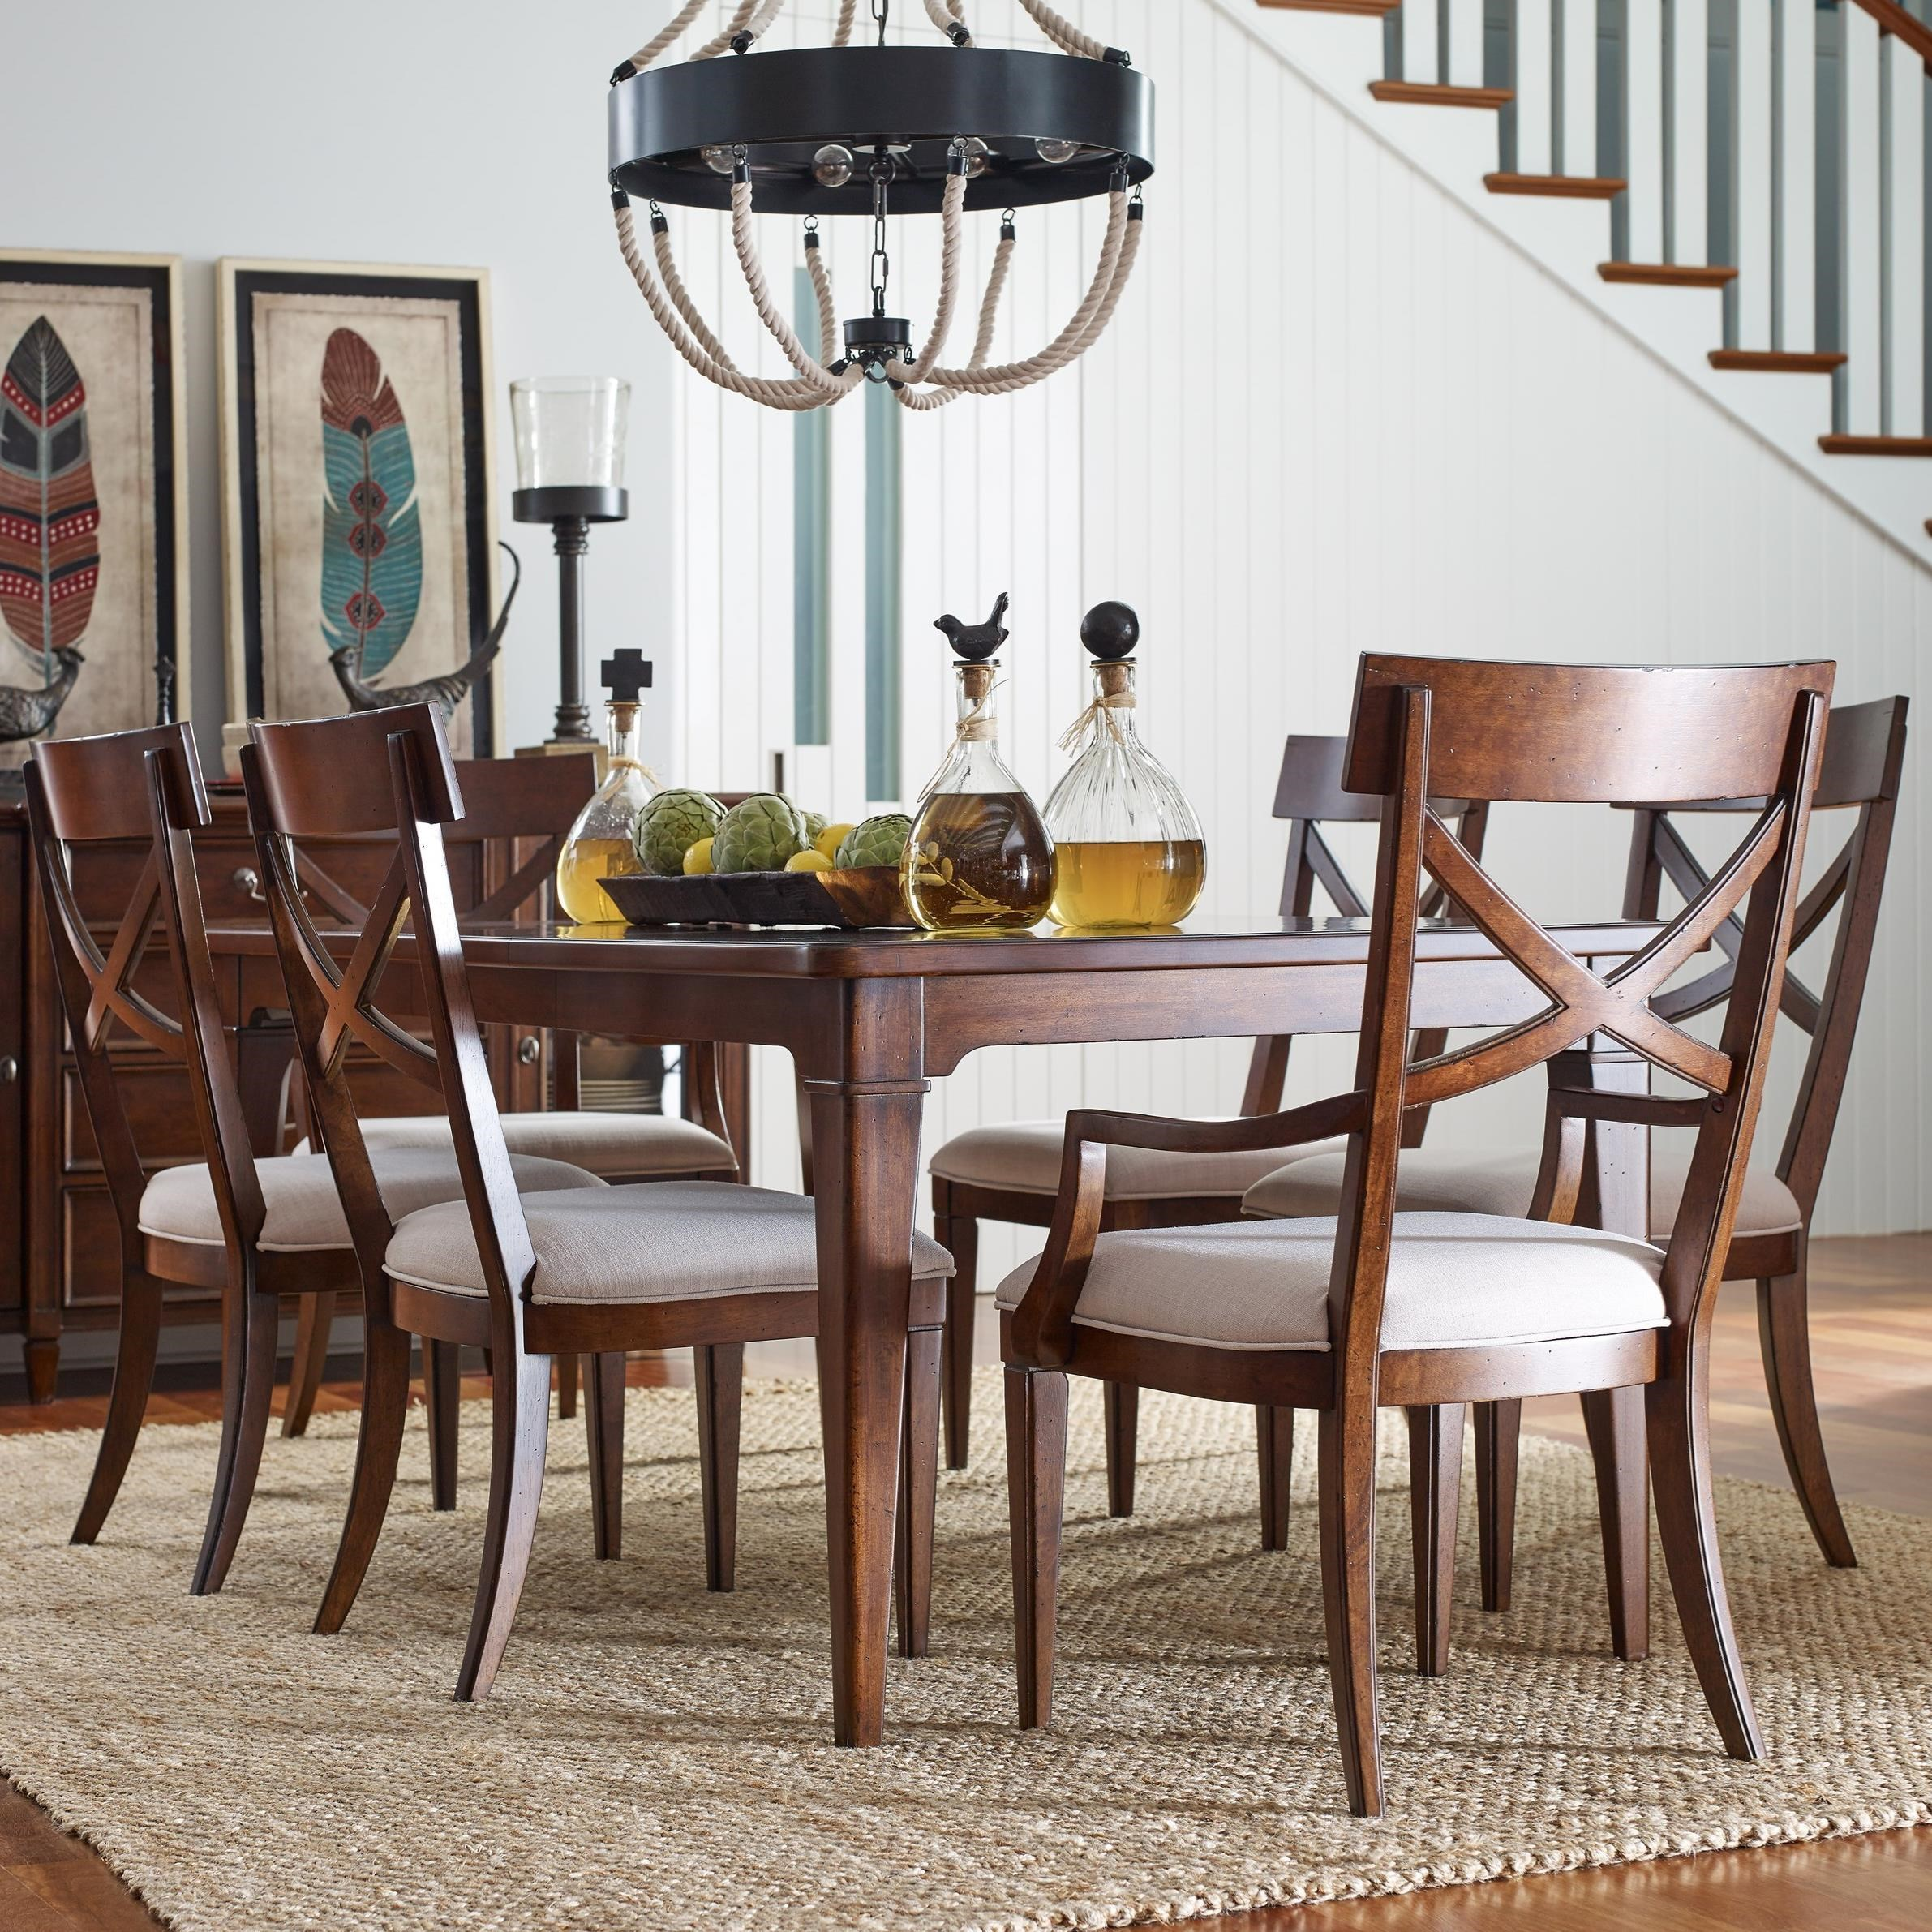 Rachael Ray Home by Legacy Classic Upstate 7 Piece Table & Chair Set - Item Number: 6040-221+2x241KD+4x240KD